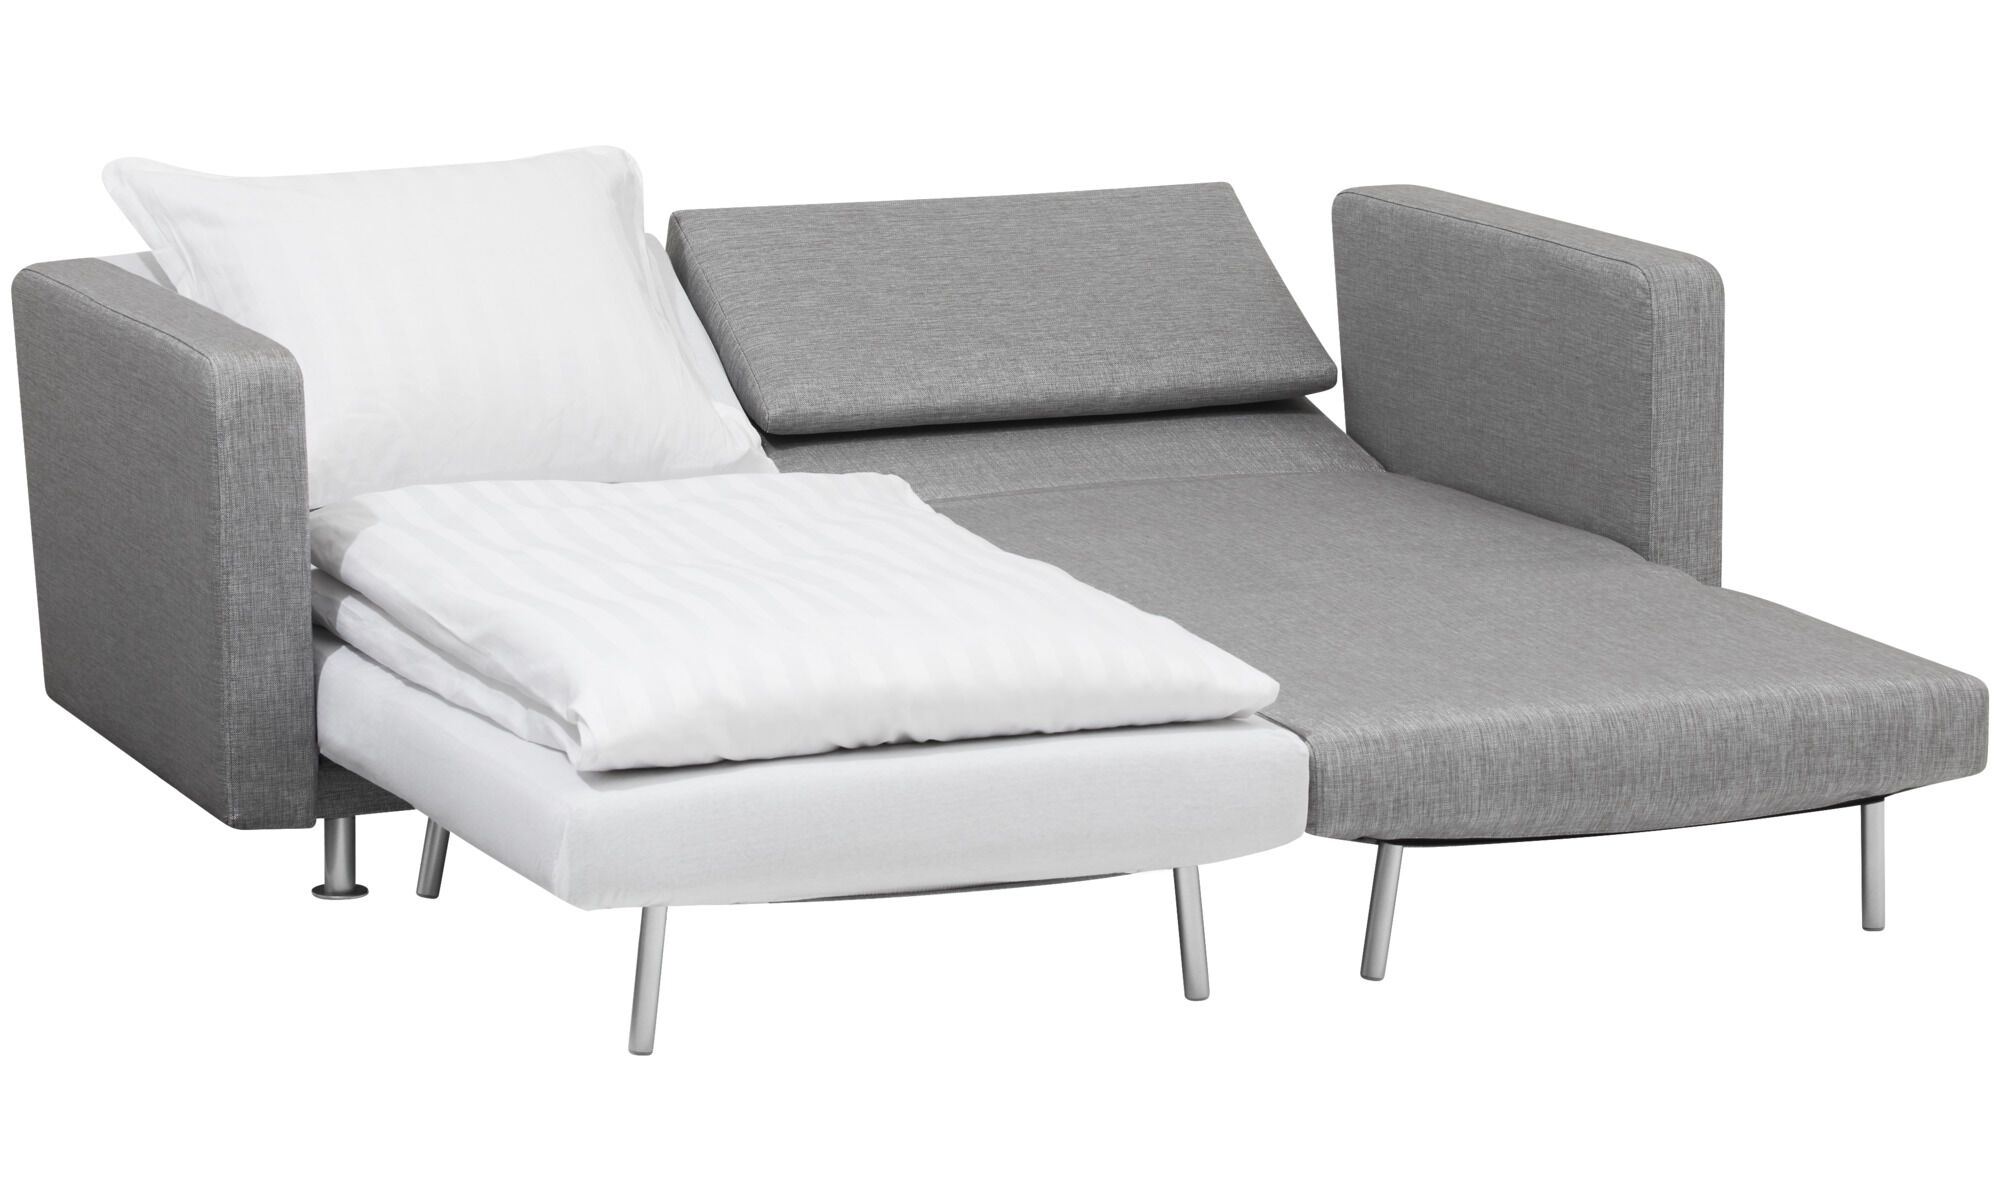 chair beds for adults academy beach chairs sofa quality from boconcept melo 2 with reclining and sleeping function grey fabric